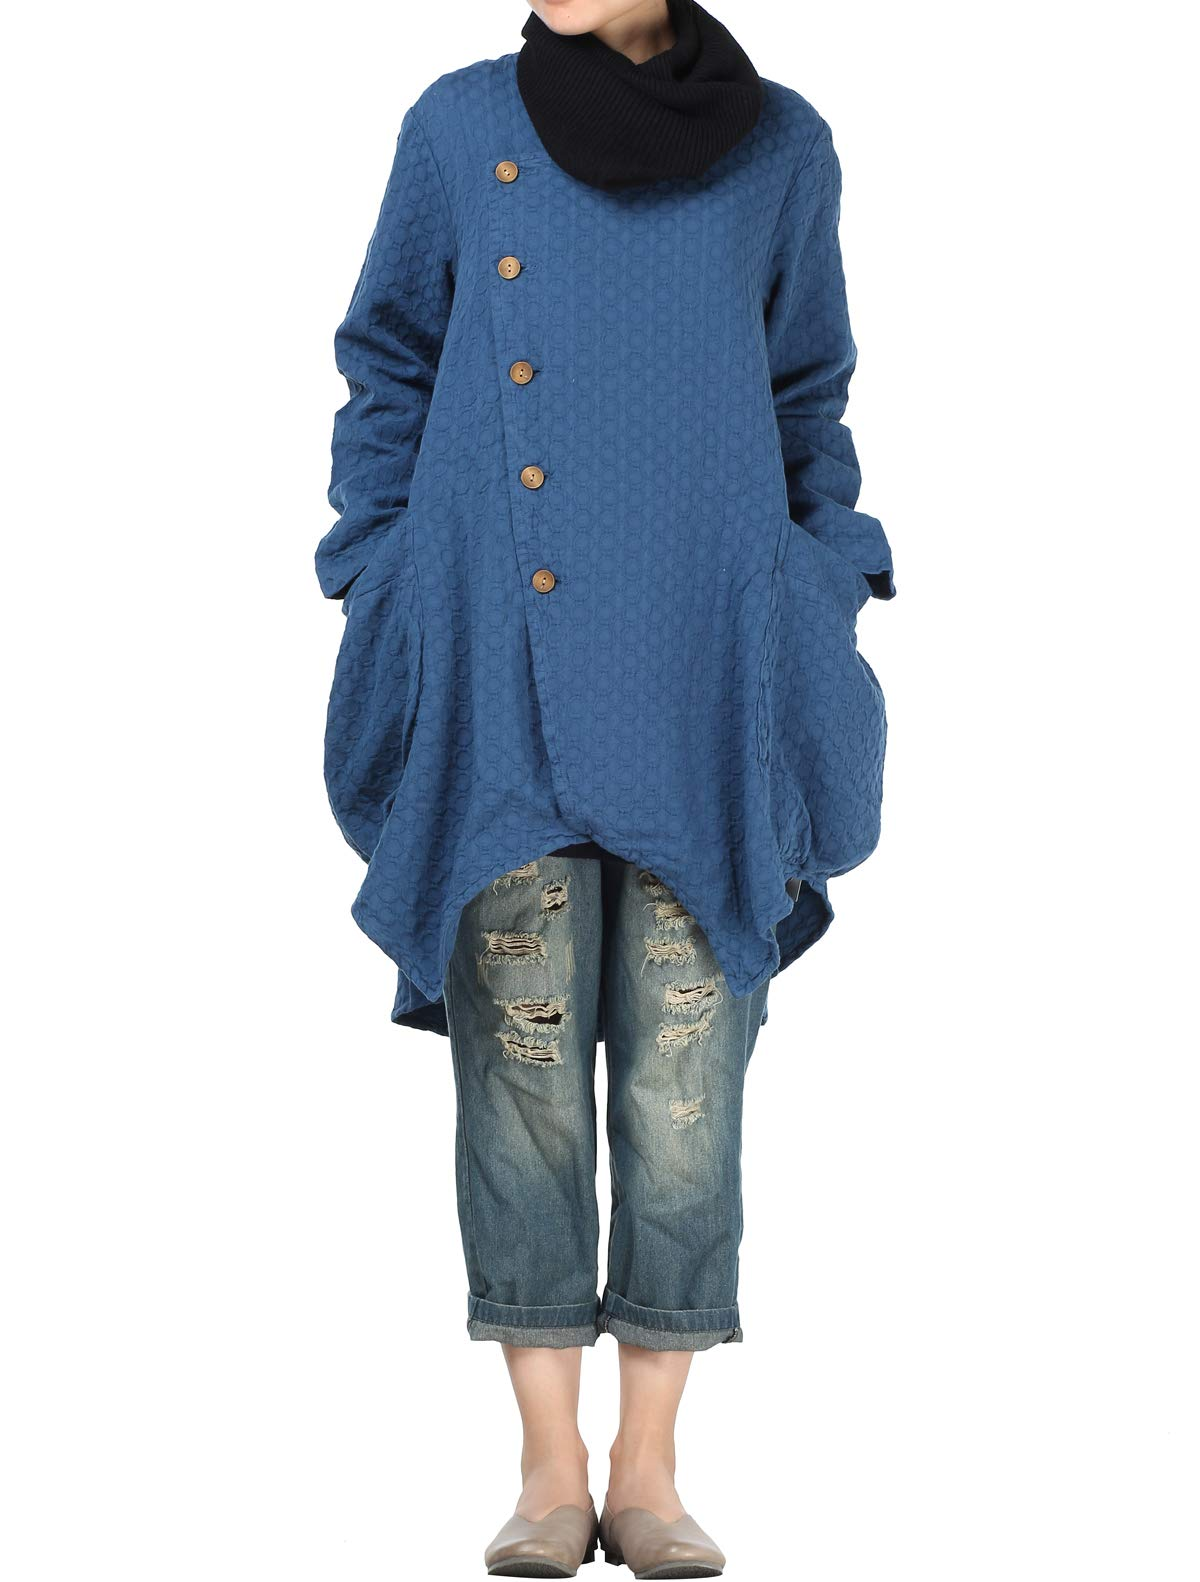 Mordenmiss Women's Button Closure Asymmetrical Trench Coat with Big Pockets Blue